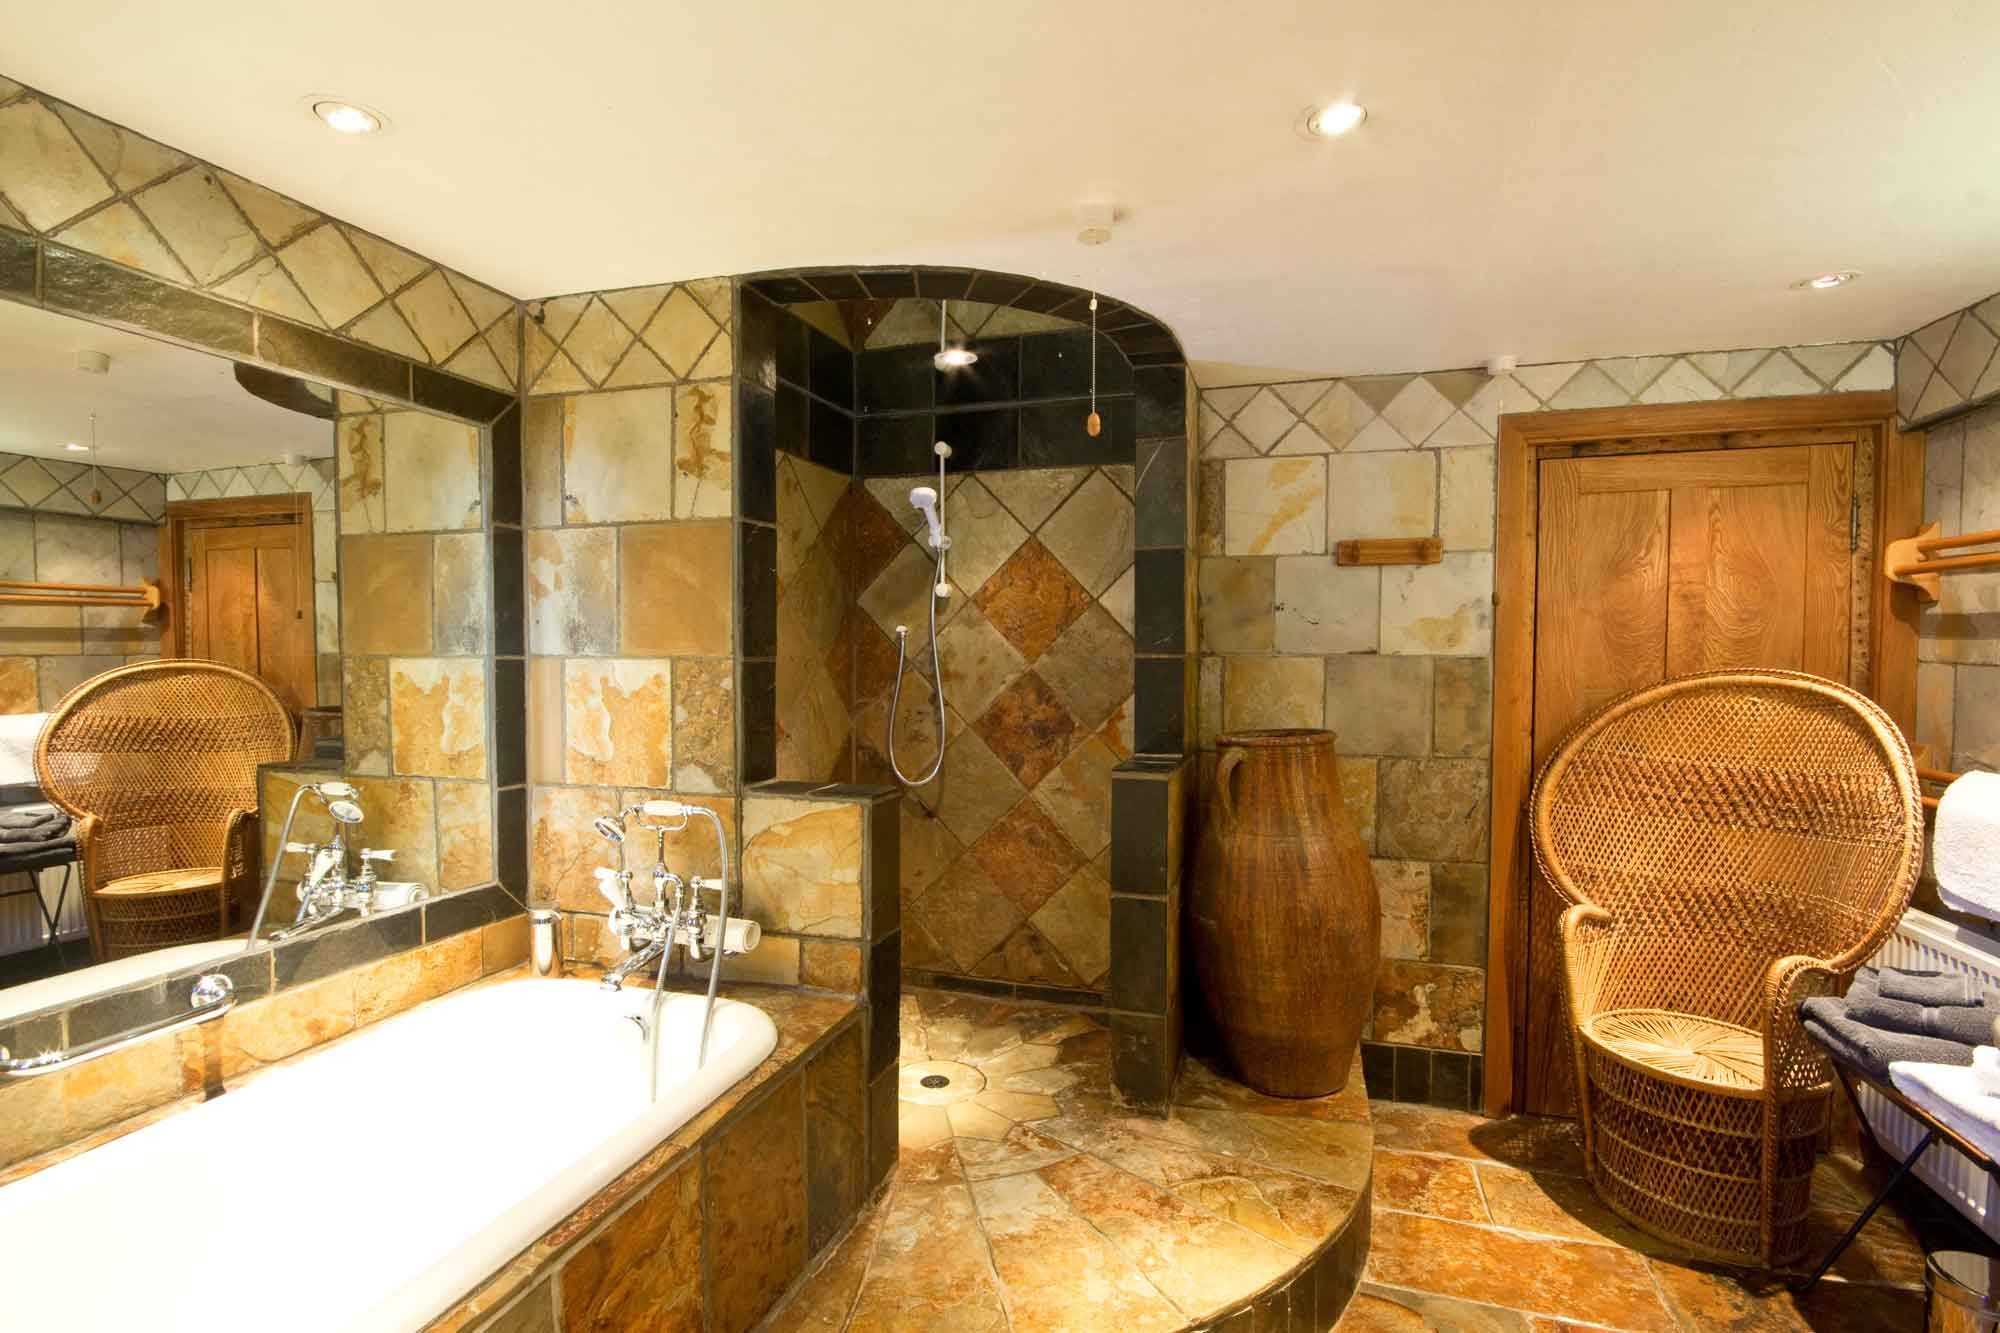 A luxury bathroom in Walnut self catering cottage, a treat after a day outdoors